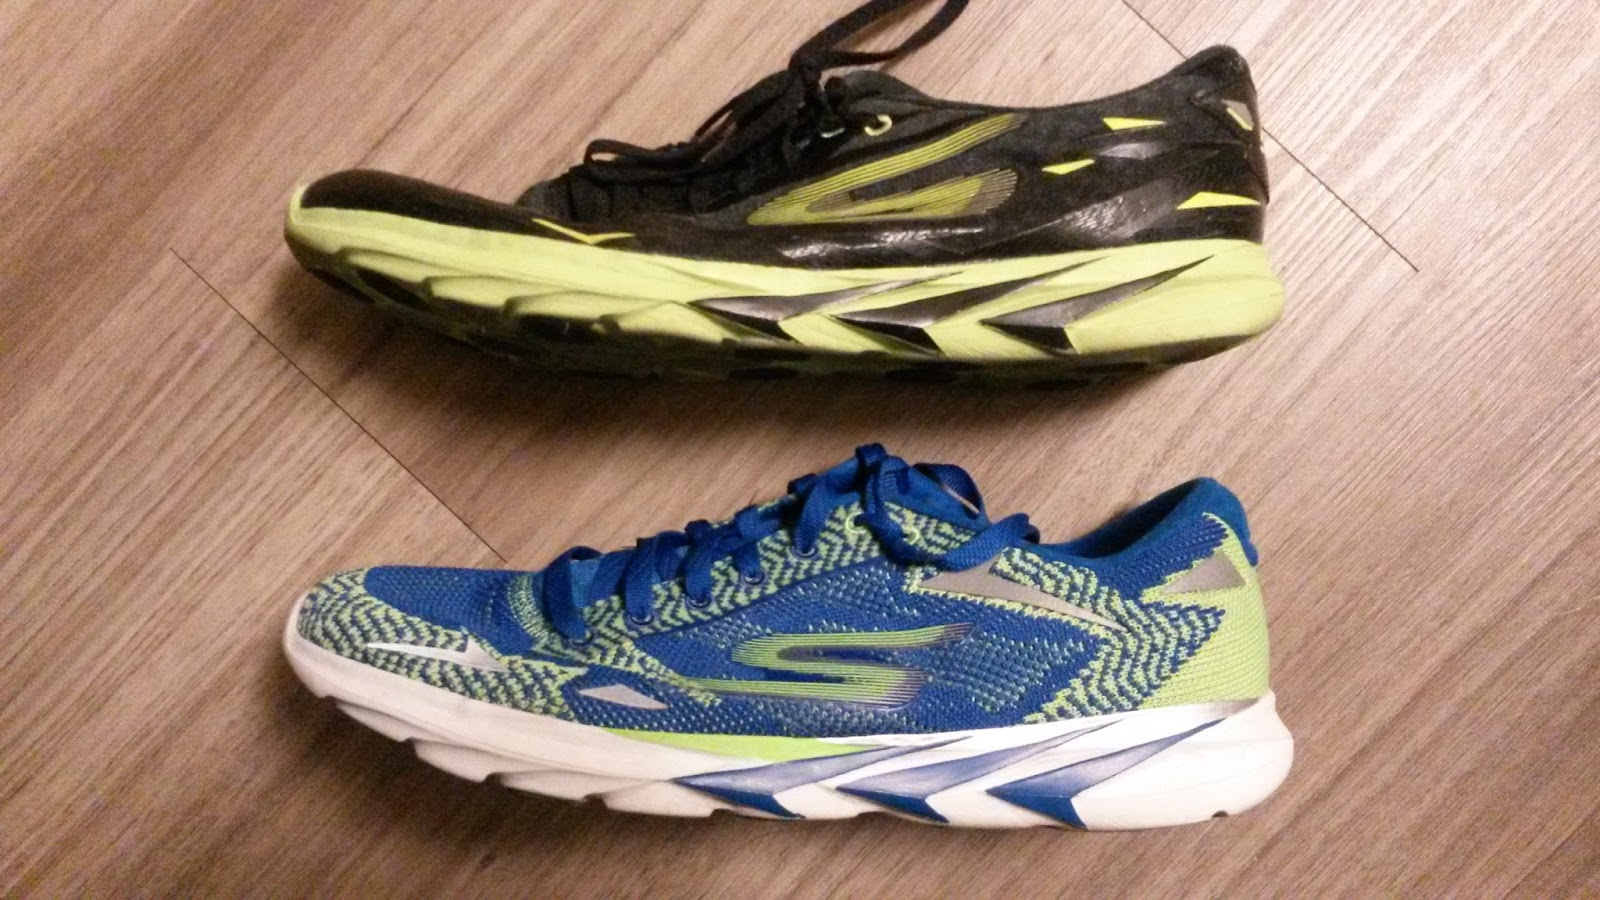 am definitely on the Skechers Performance bandwagon.. The GoMeb Speed 3 2016 and Speed 3 are within the same line but are drastically different. How so?